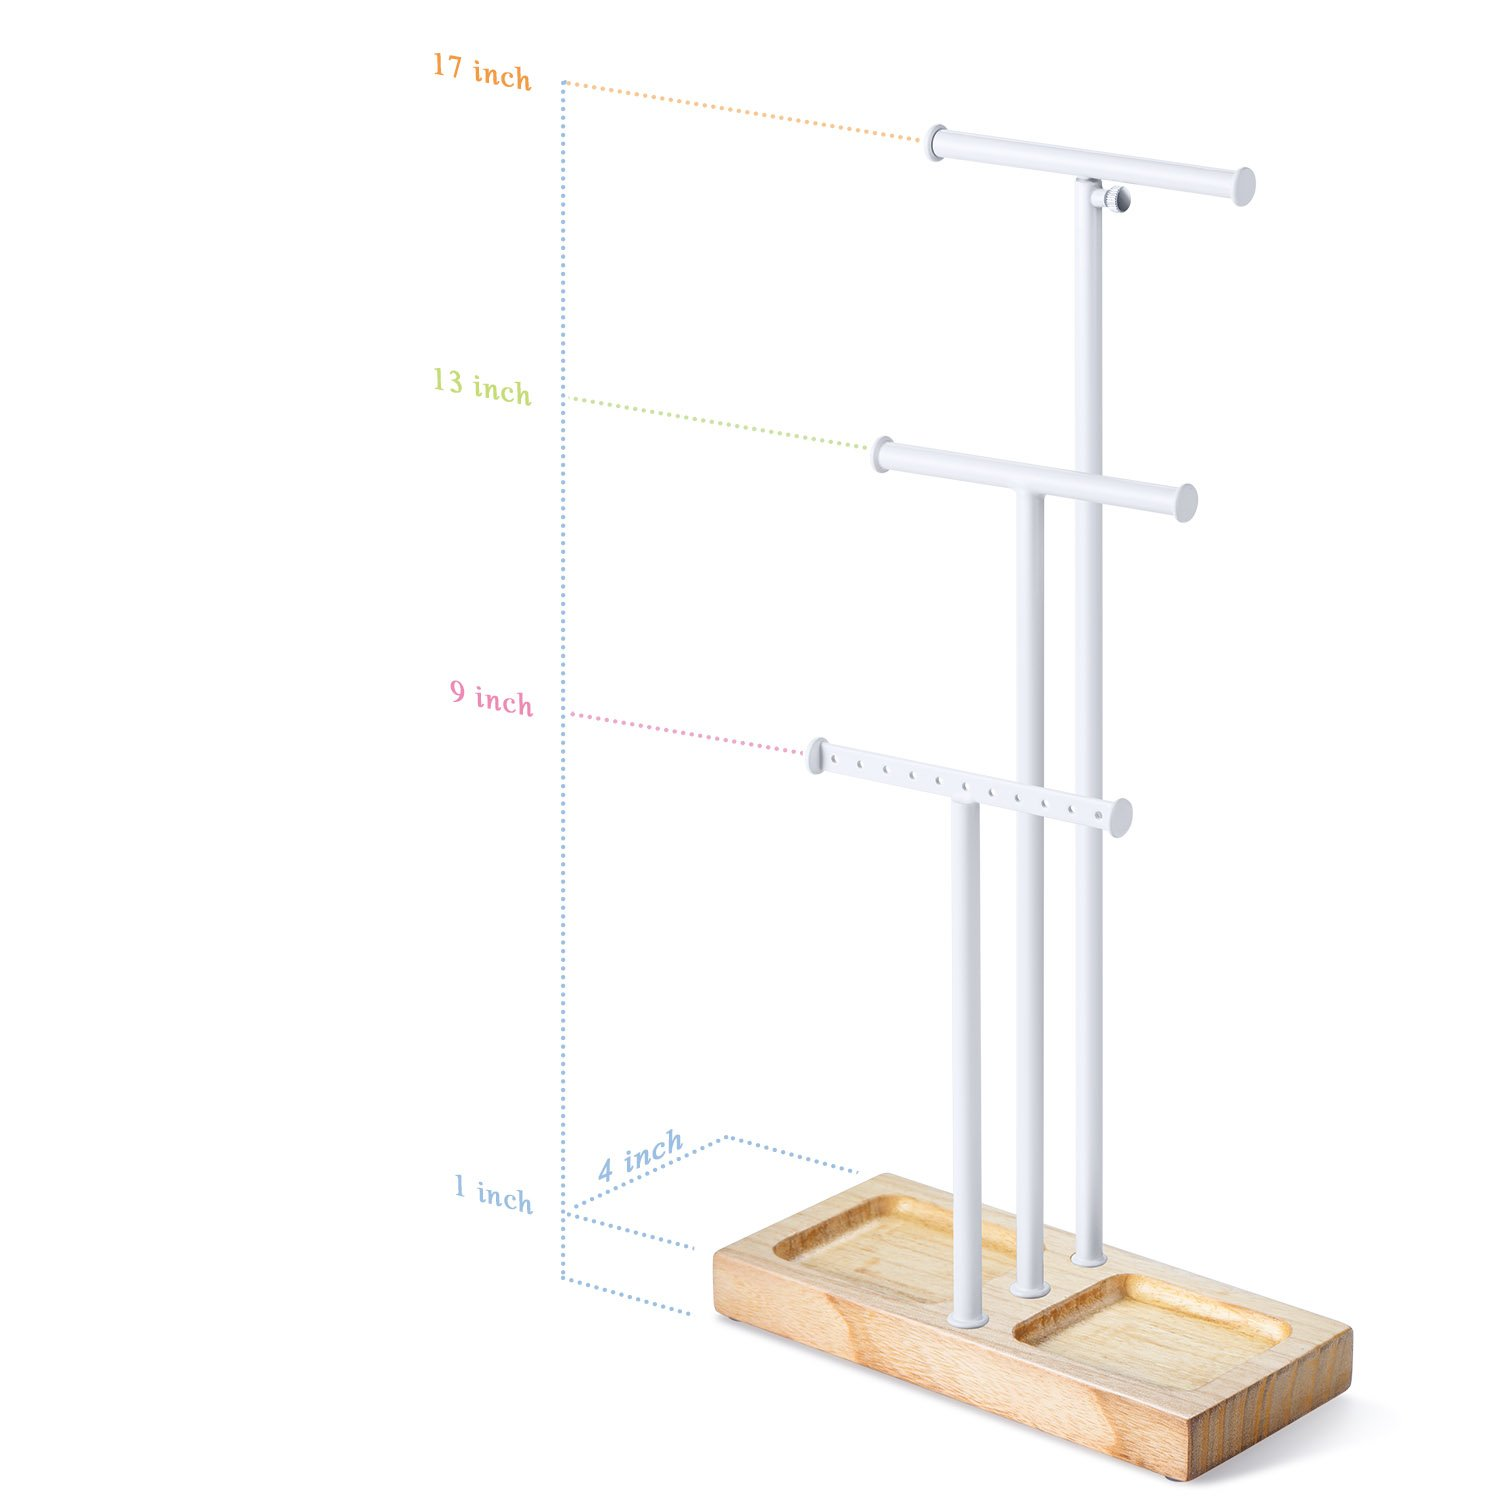 Love-KANKEI Jewelry Tree Stand White Metal & Wood Basic - Adjustable Height with Large Storage for Necklaces Bracelets Earrings Natural Wood by Love-KANKEI (Image #6)